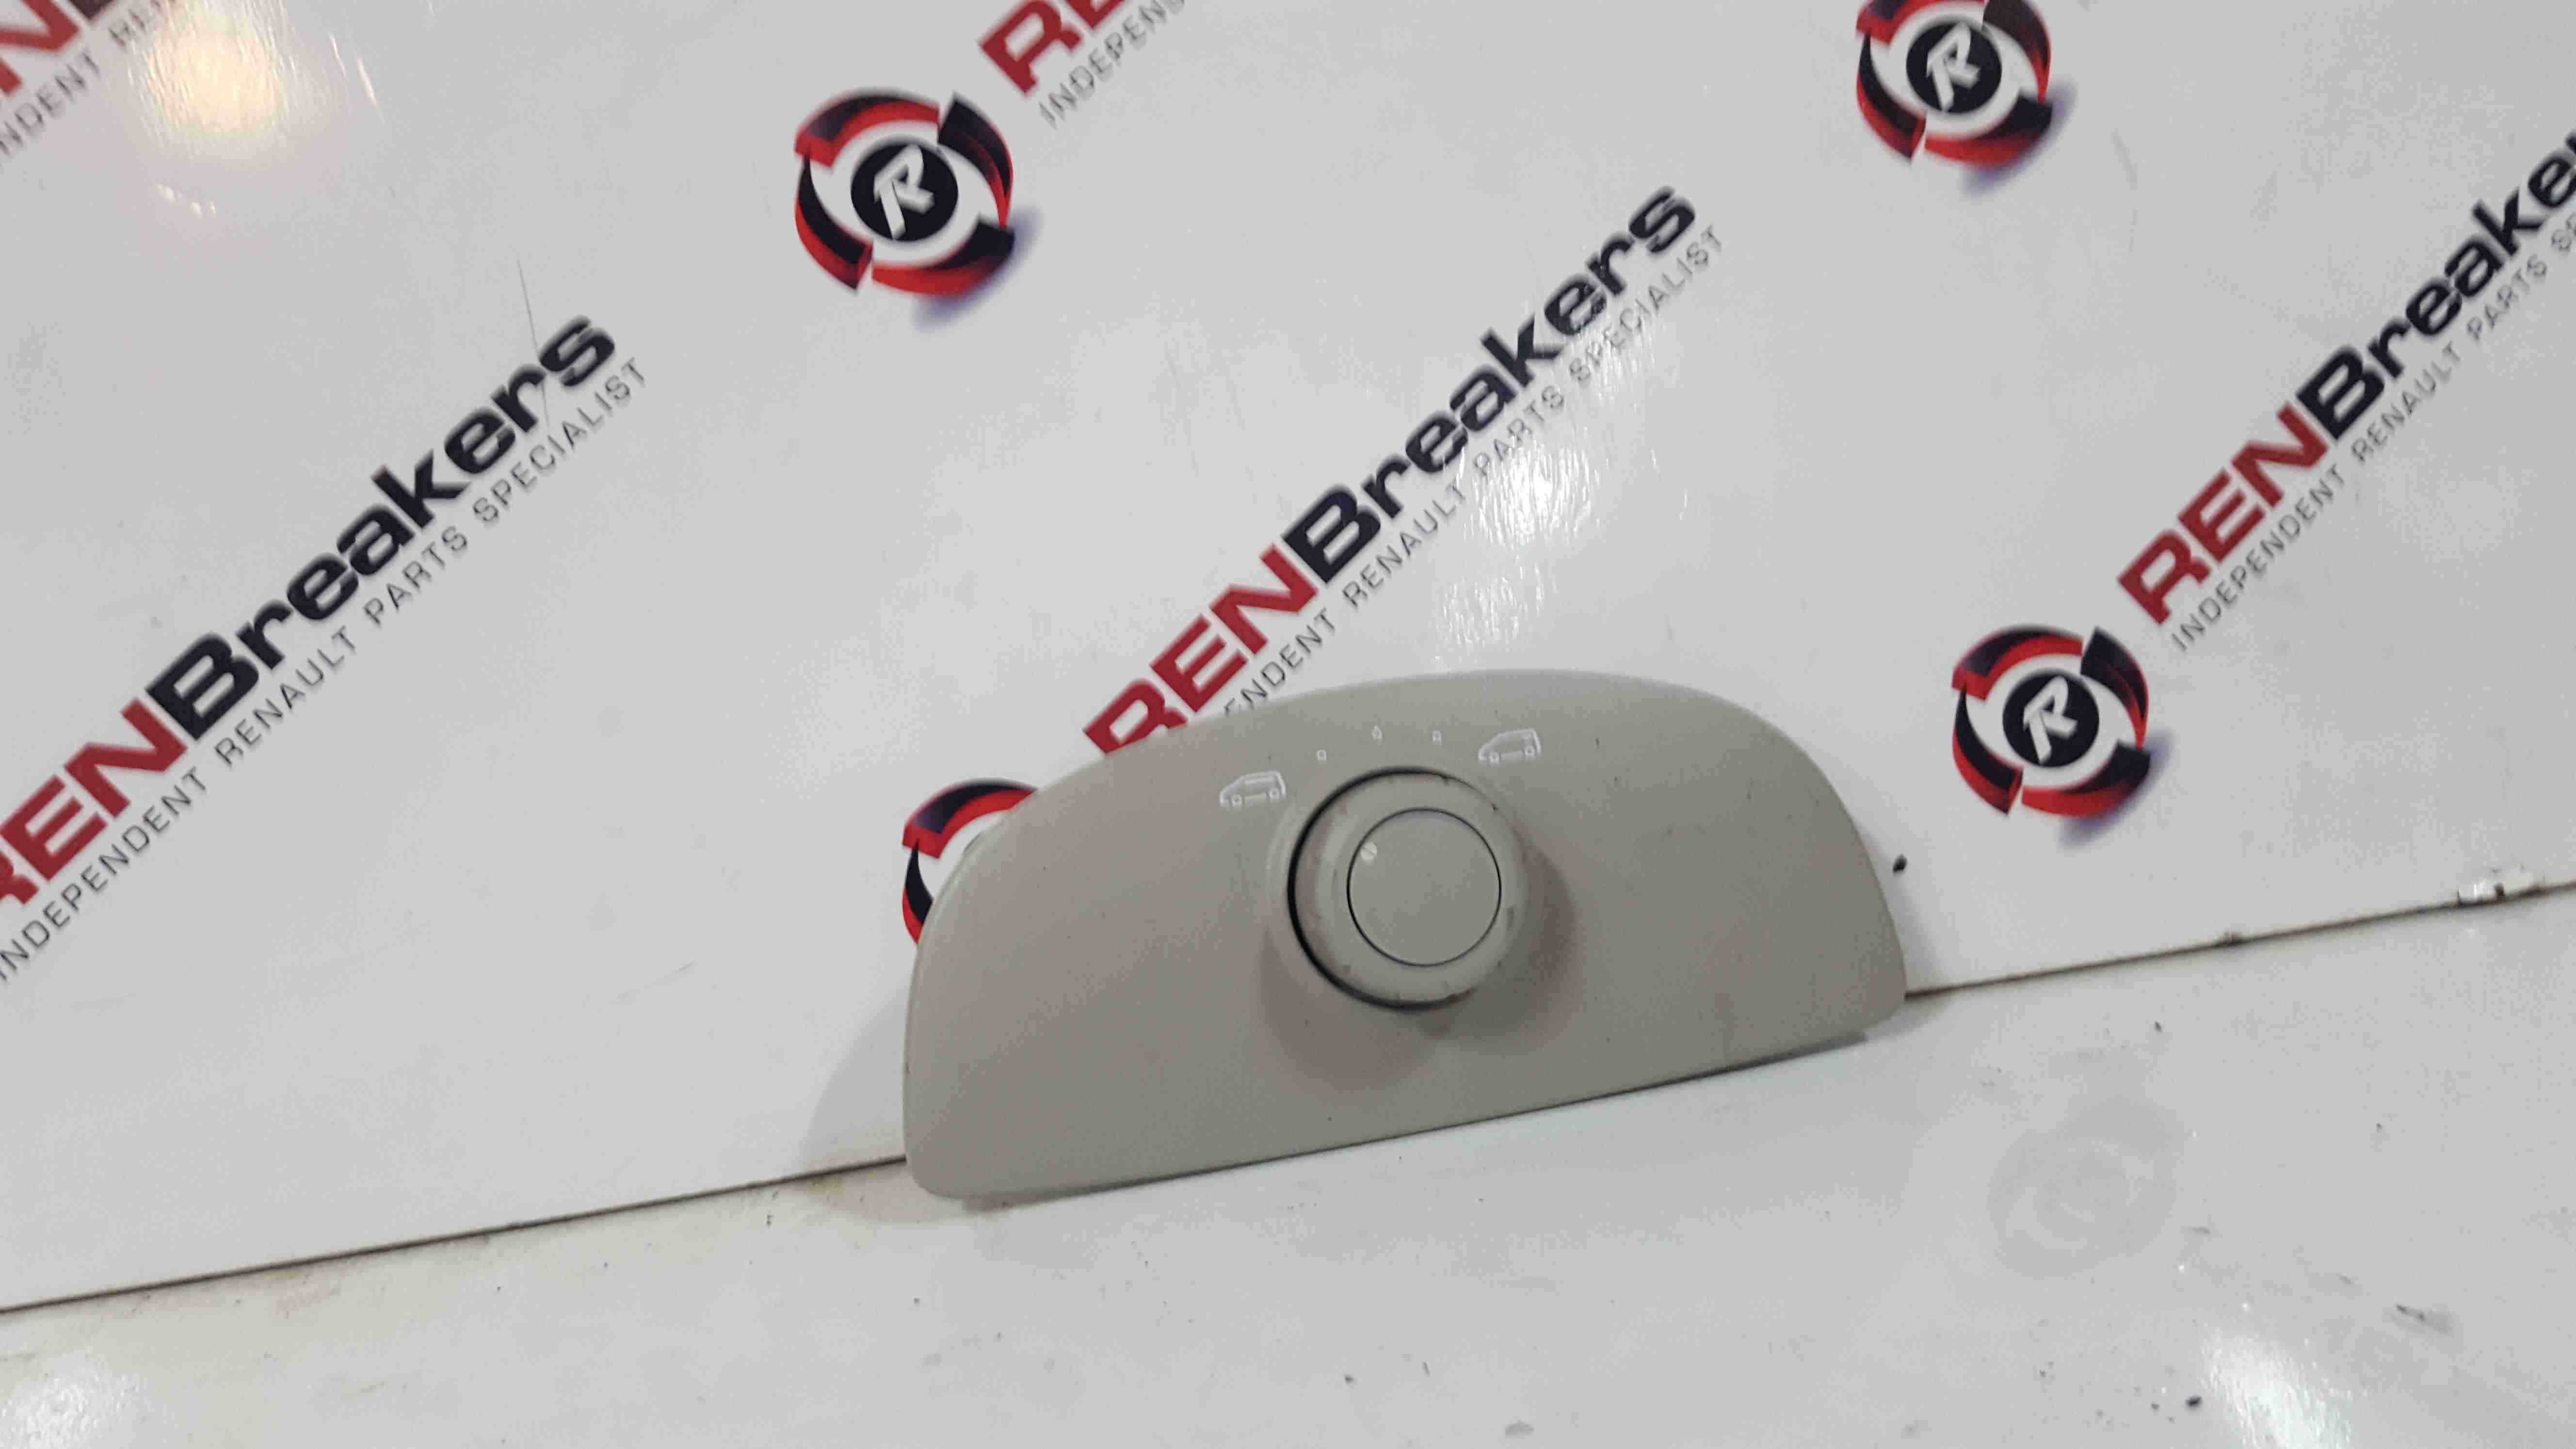 Renault Espace 2003-2013 Sunroof Handle Open Switch